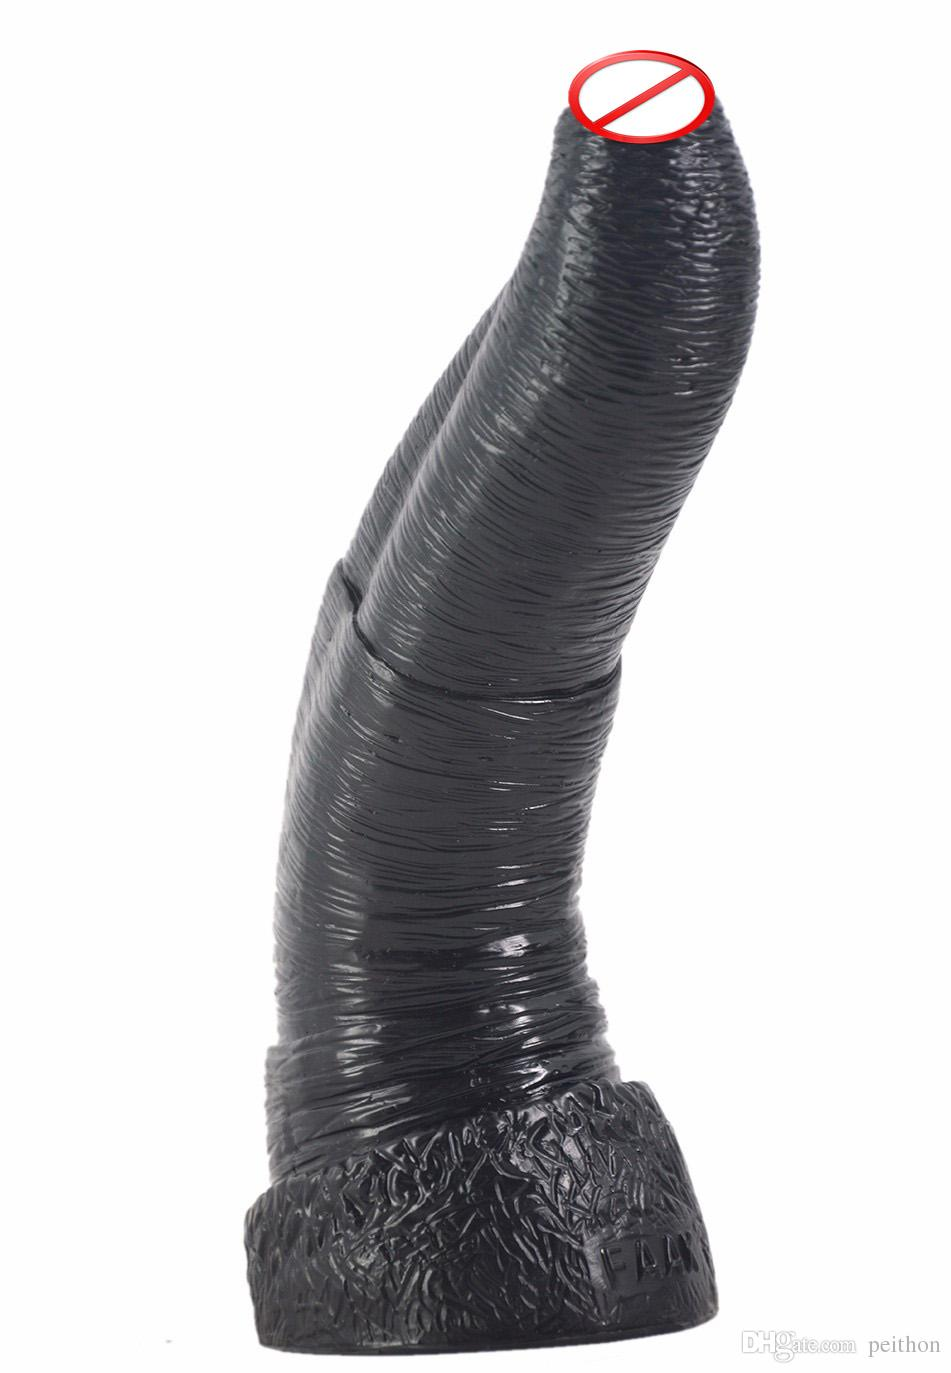 large black big dildo animal penis elephant dildo artificial penis male female anal plug woman couples masturbation sex toys